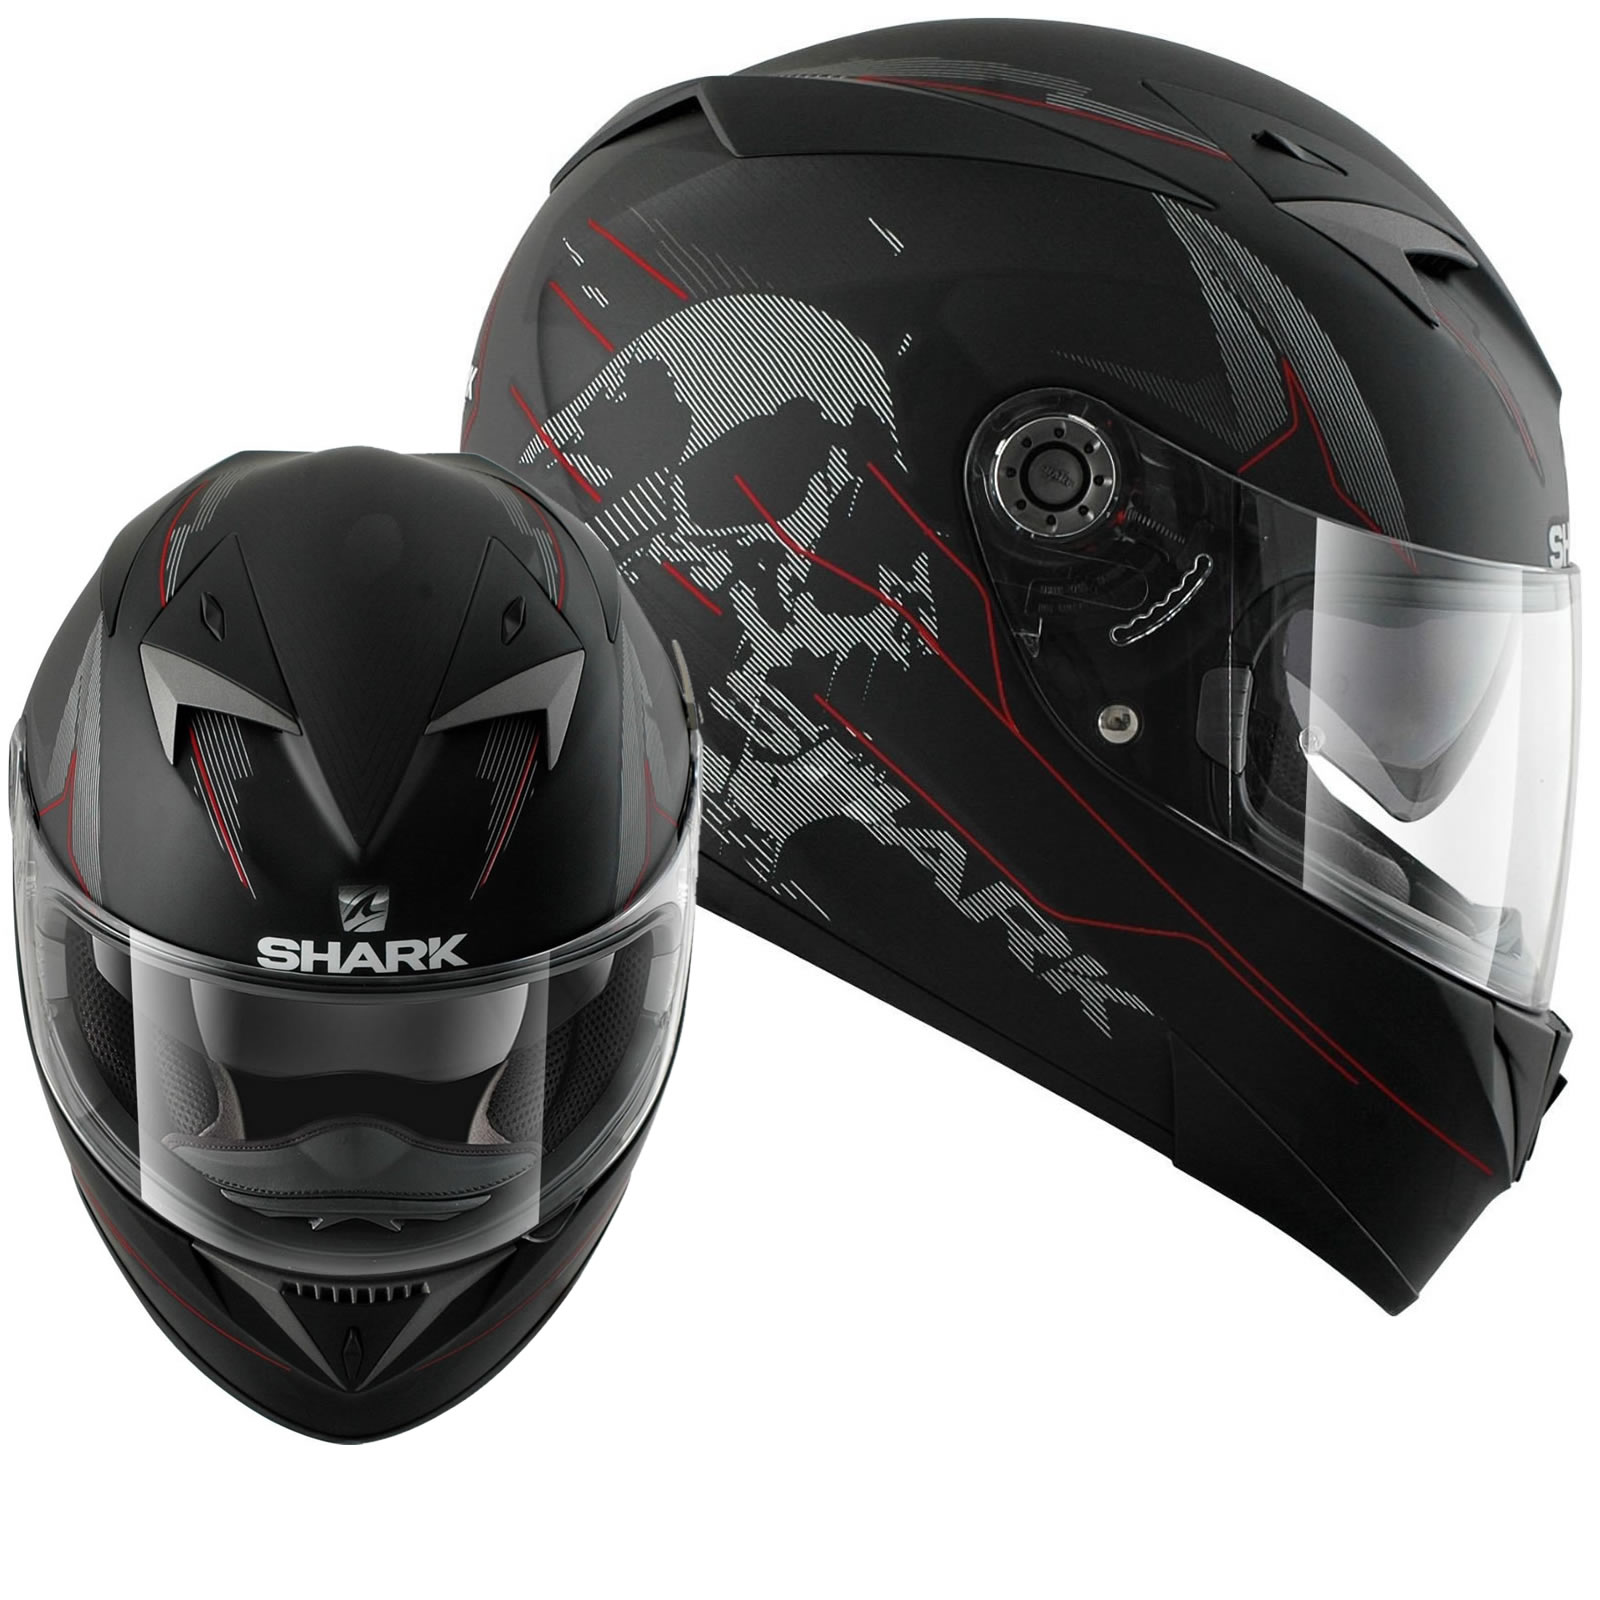 shark s700 s naka mat motorcycle helmet full face helmets. Black Bedroom Furniture Sets. Home Design Ideas